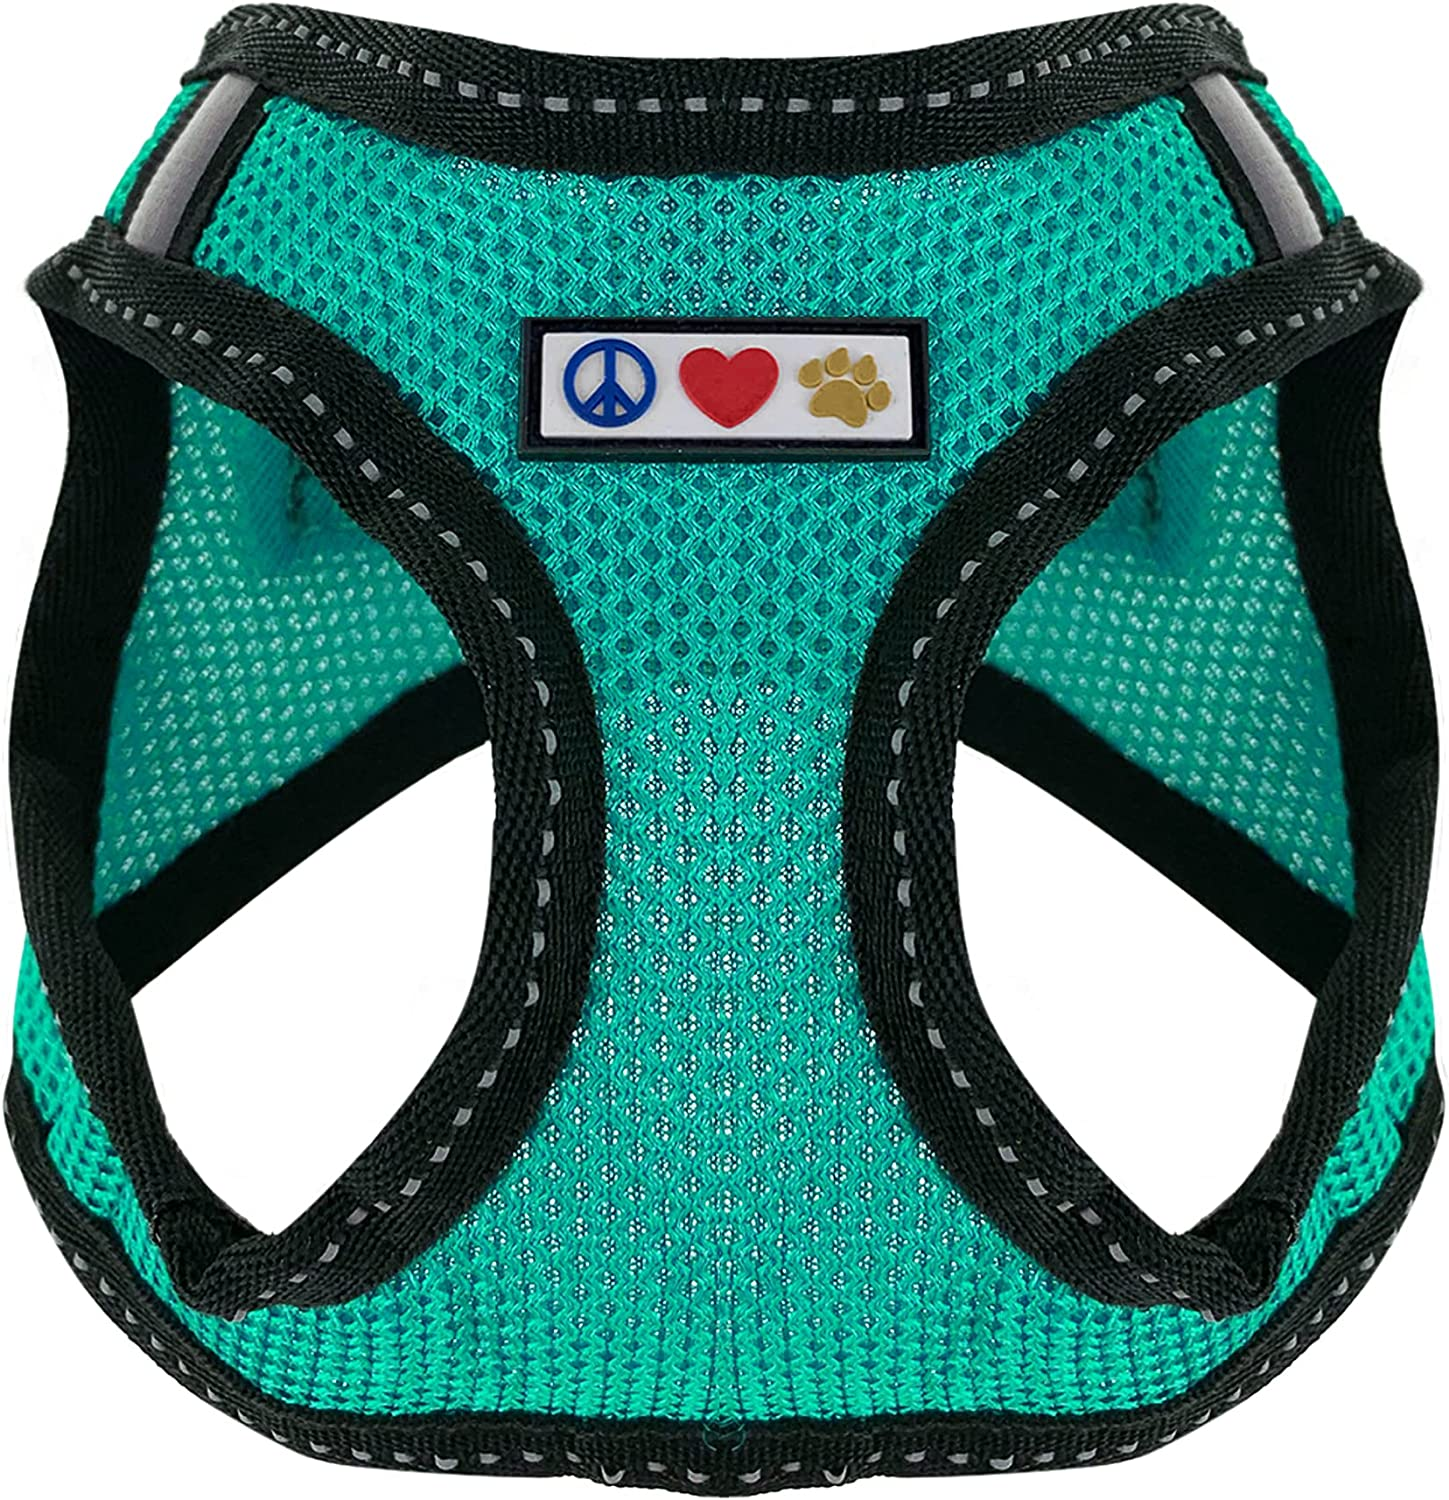 Pawtitas Dog Vest Harness Max 64% OFF Made with All Breathable We Air Mesh Shipping included